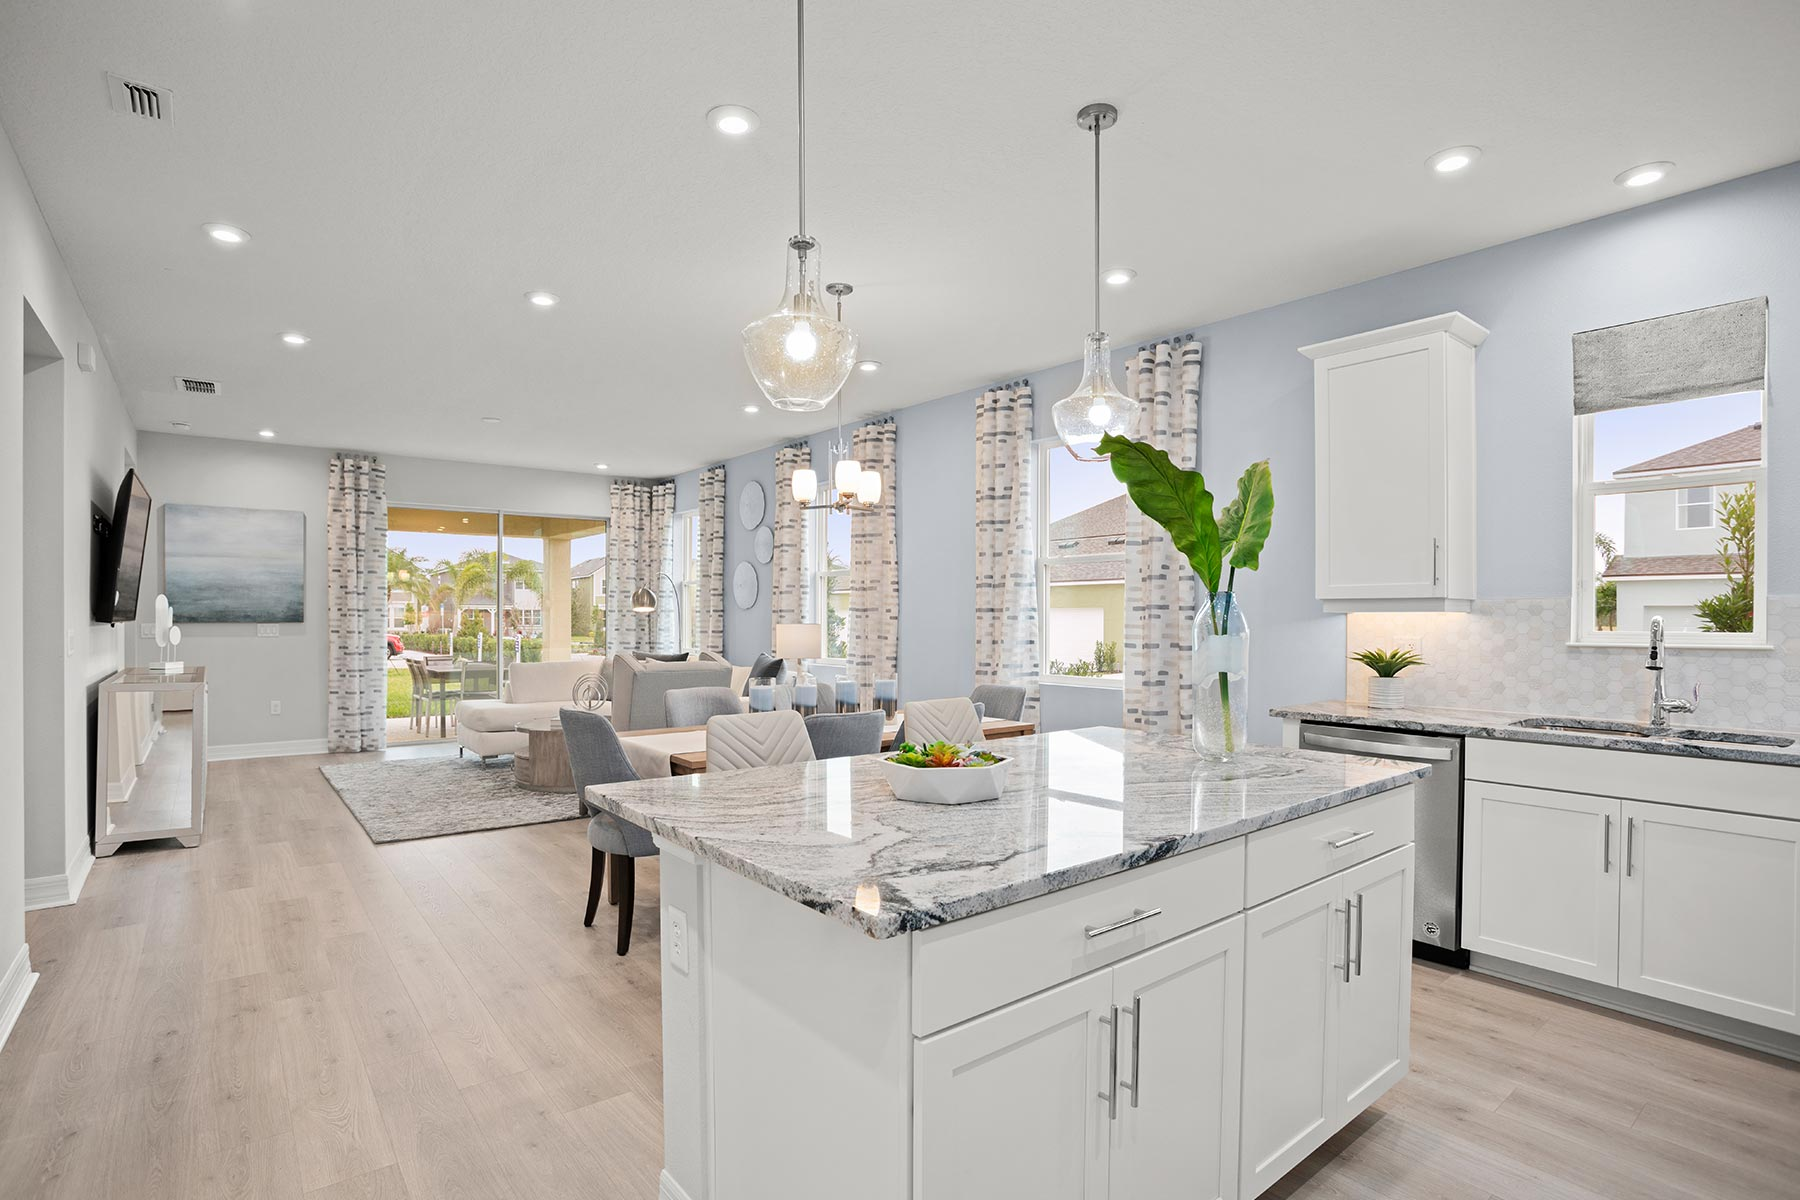 Camden Plan Kitchen at Meridian Parks in Orlando Florida by Mattamy Homes